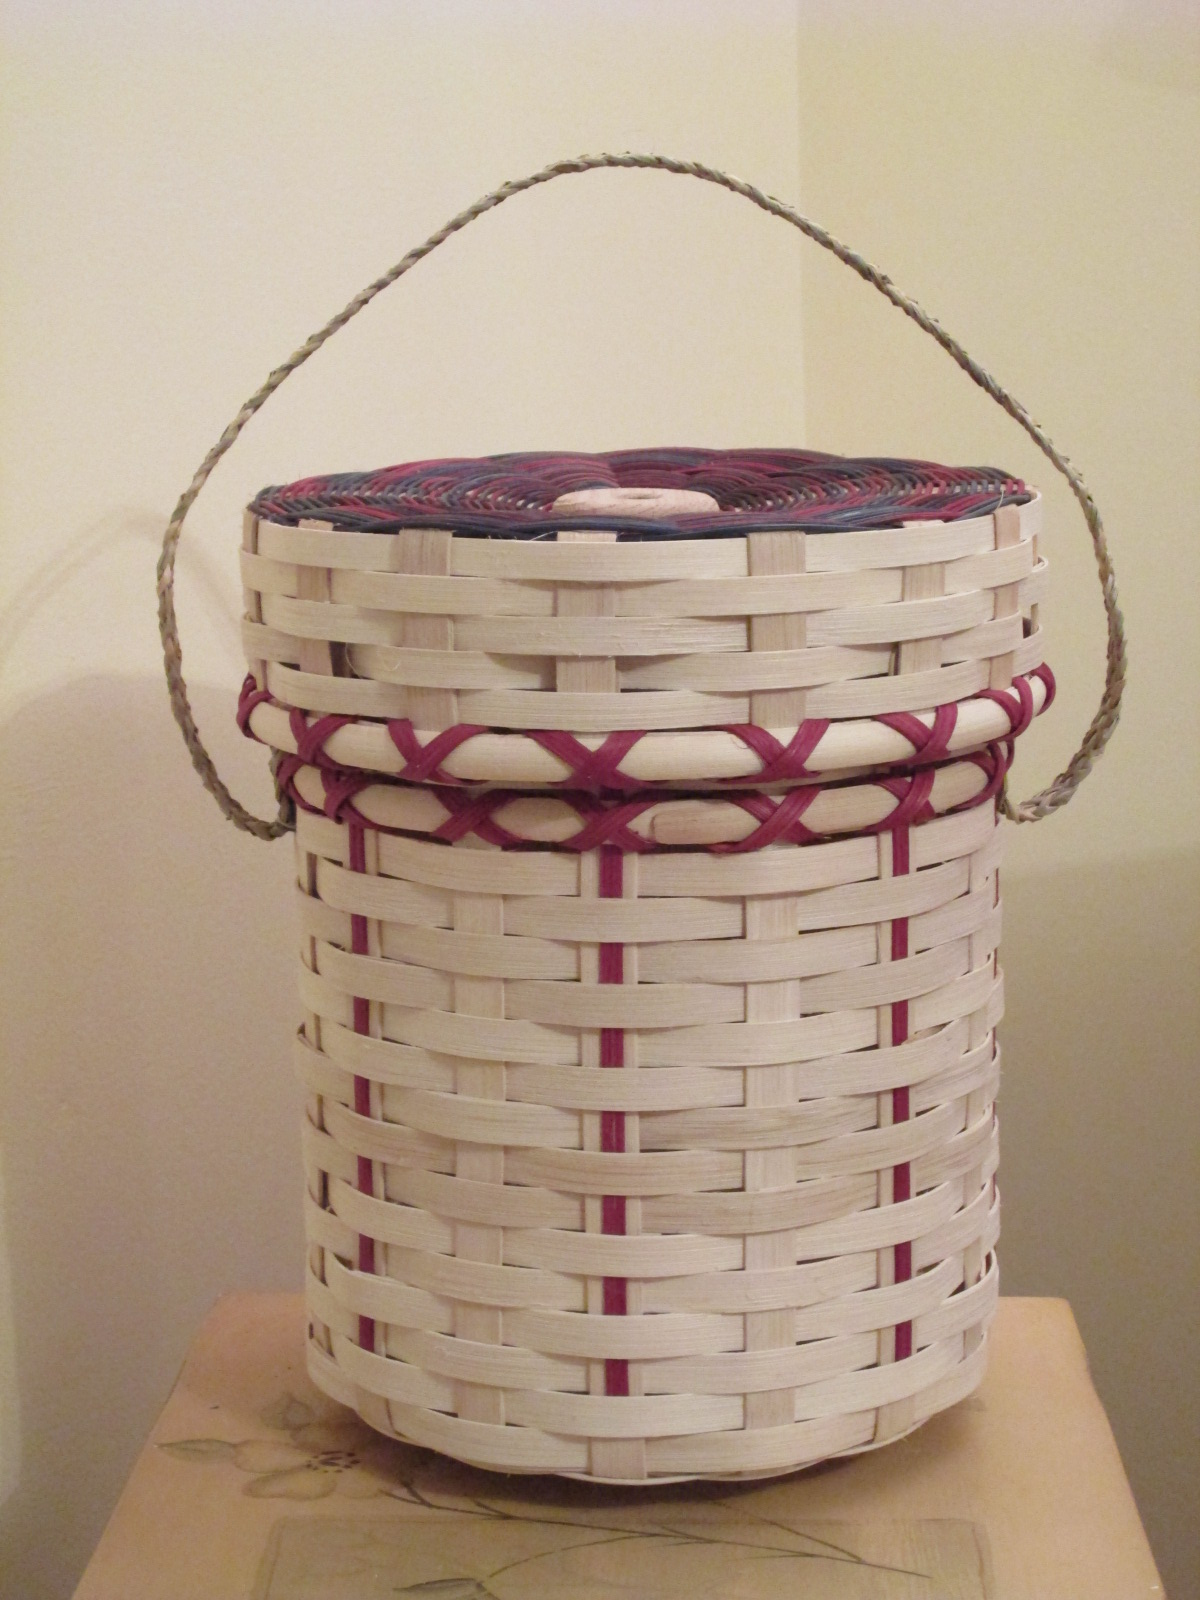 How To Make A Woven Yarn Basket : Knitting basket a whole lot of weaving